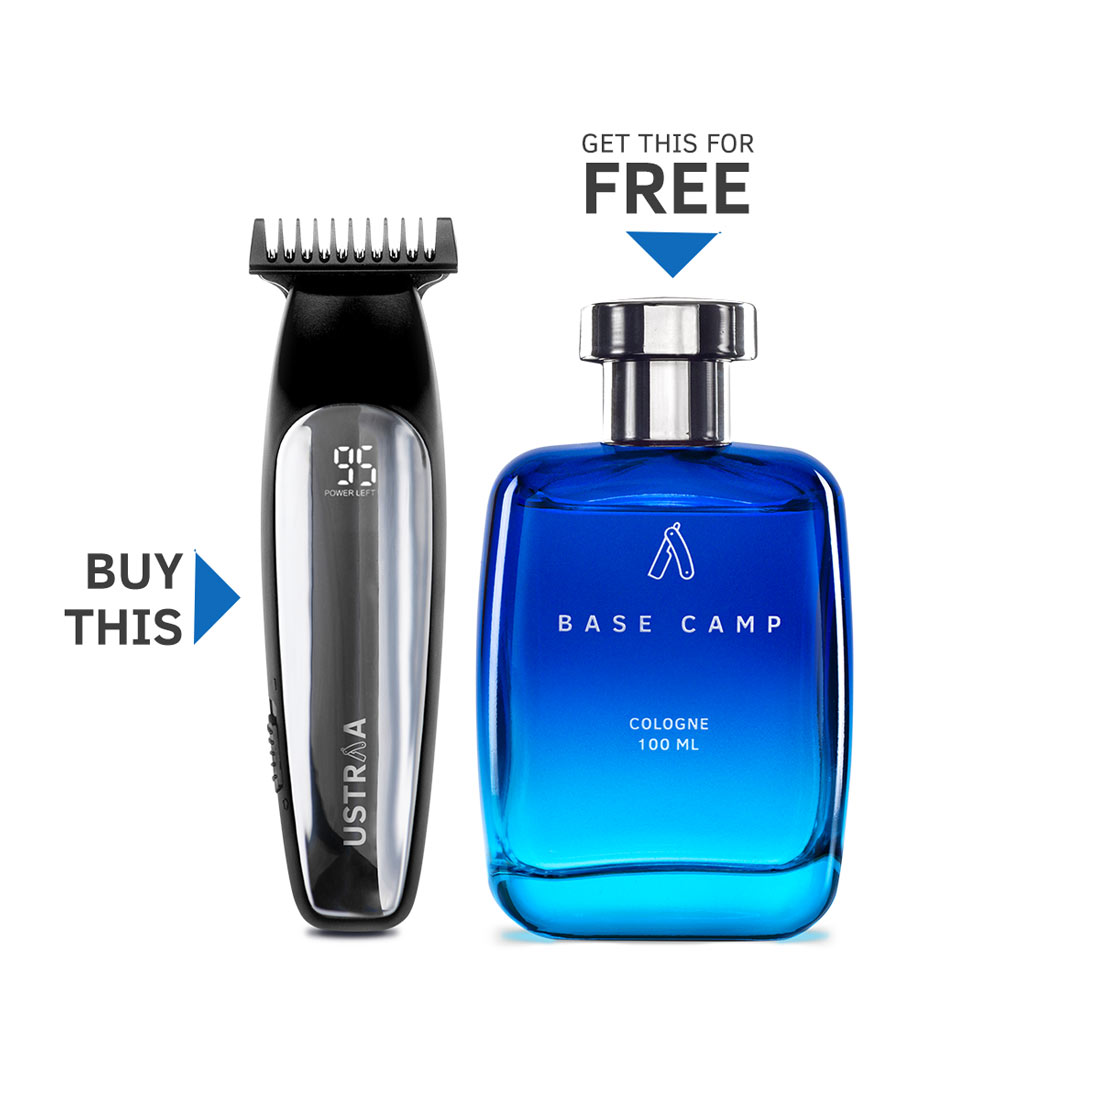 Ustraa Chrome - Lithium Powered Beard Trimmer (Get Ustraa Cologne Free)